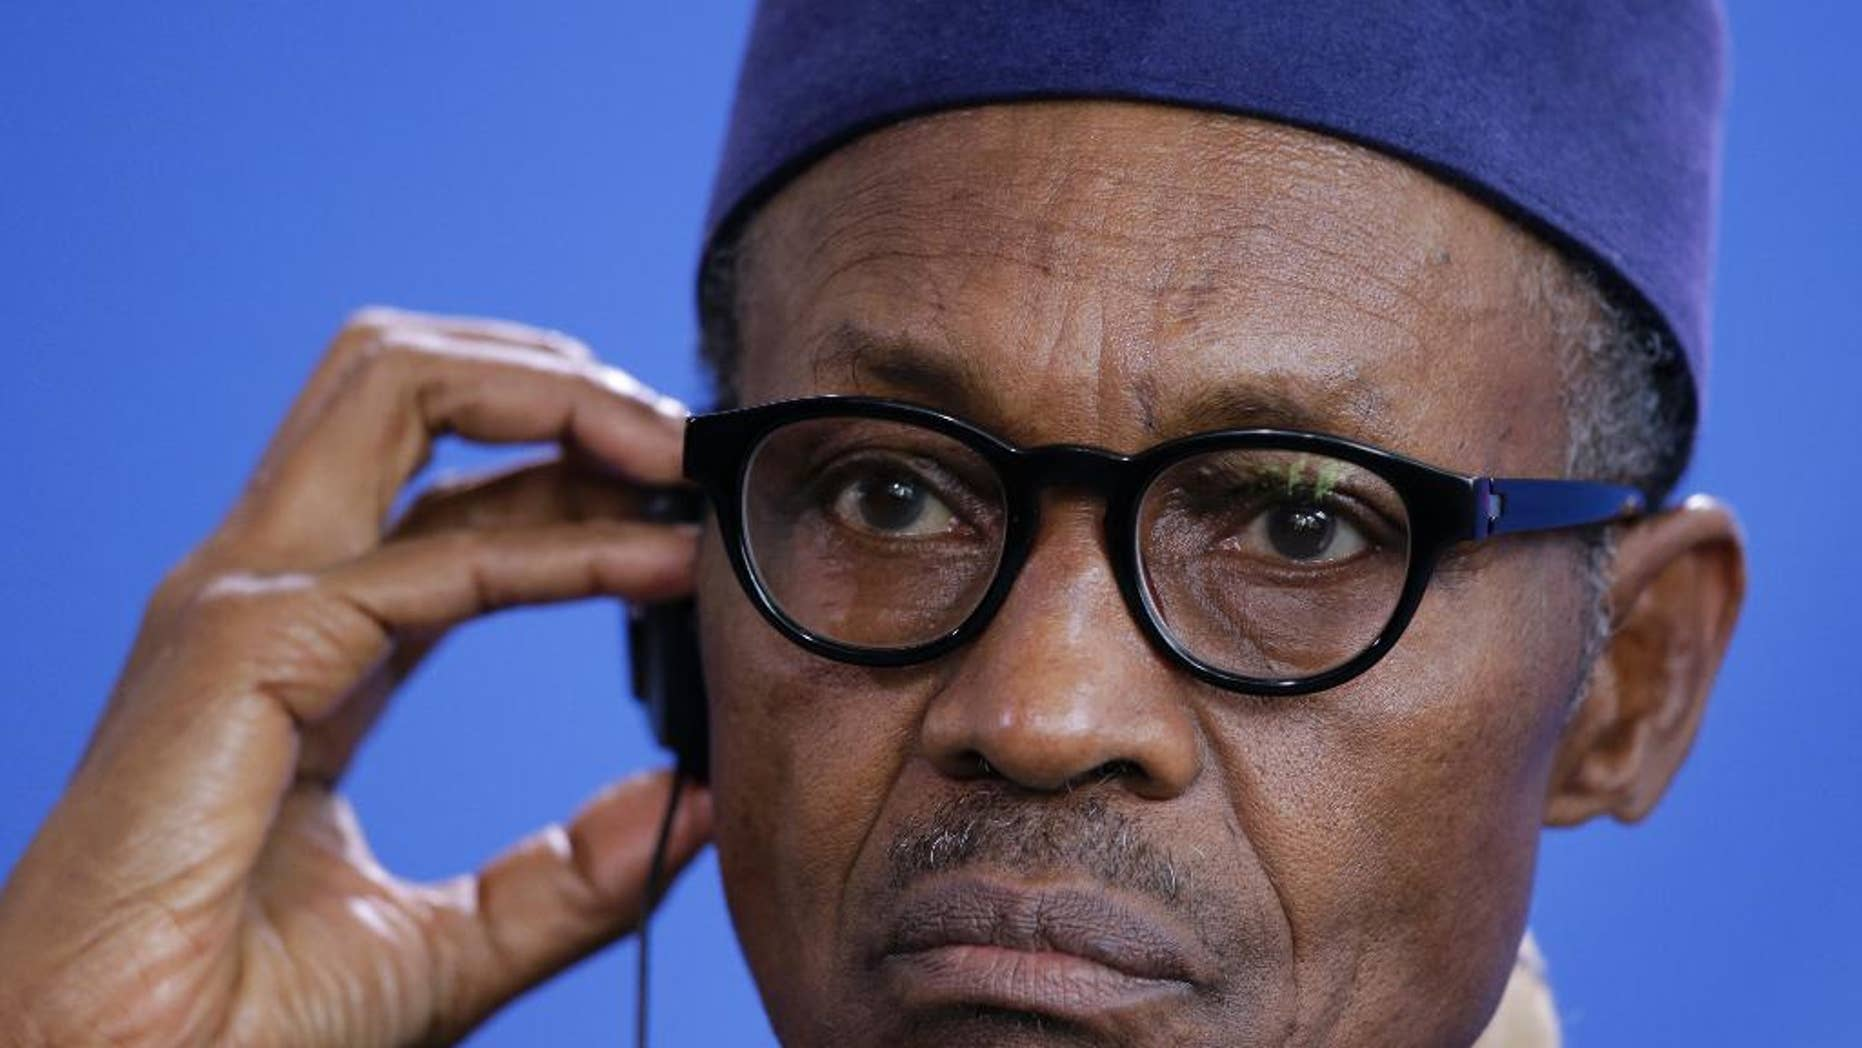 Muhammadu Buhari has called for calm after dozens were killed in central Nigeria.